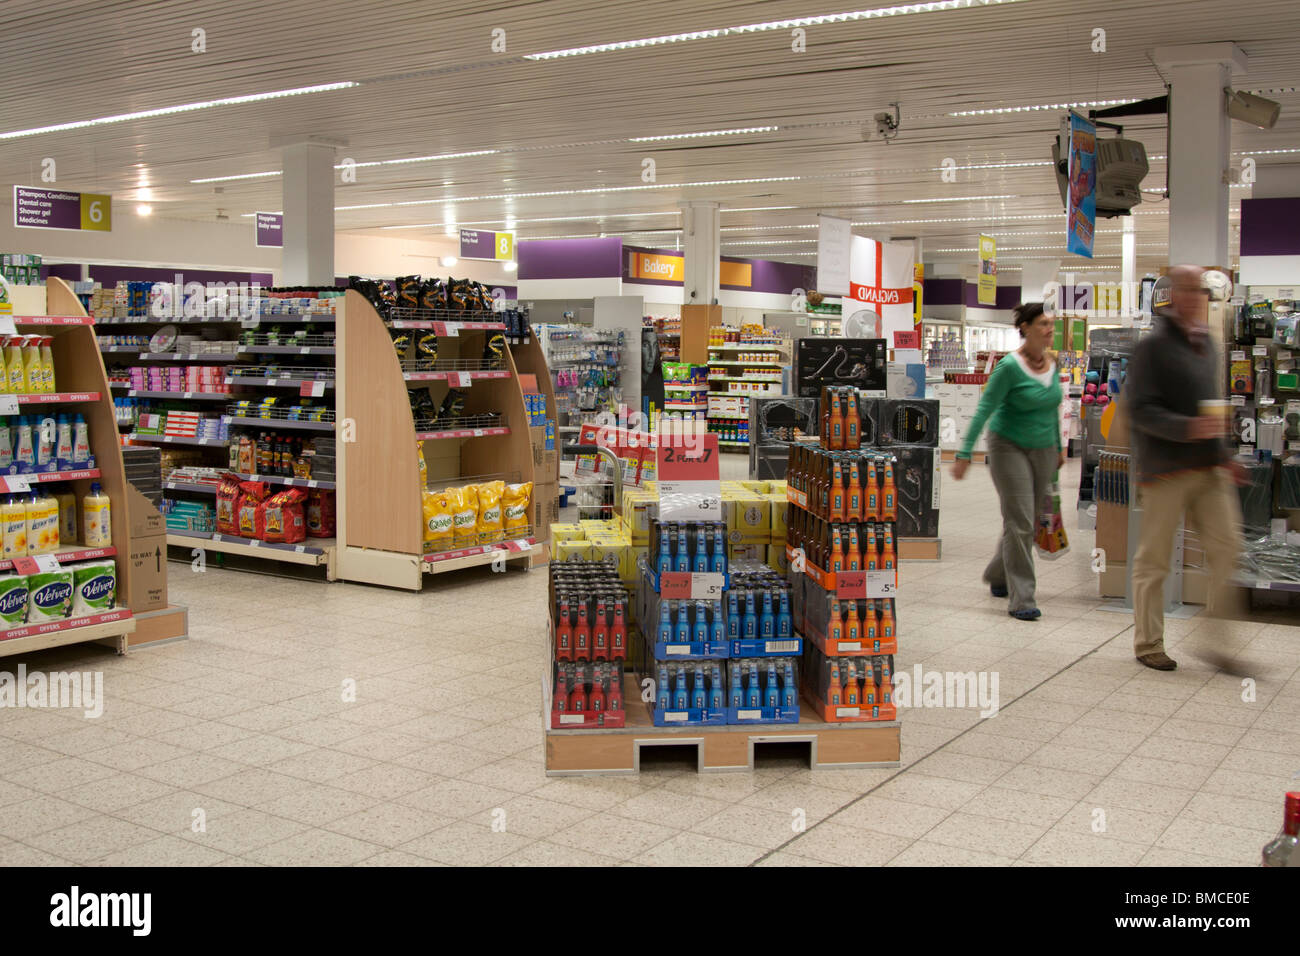 British Navy, Army and Air Force Institutes (NAAFI) Supermarket - Rheindahlen Military Complex  - Mönchengladbach - Stock Image